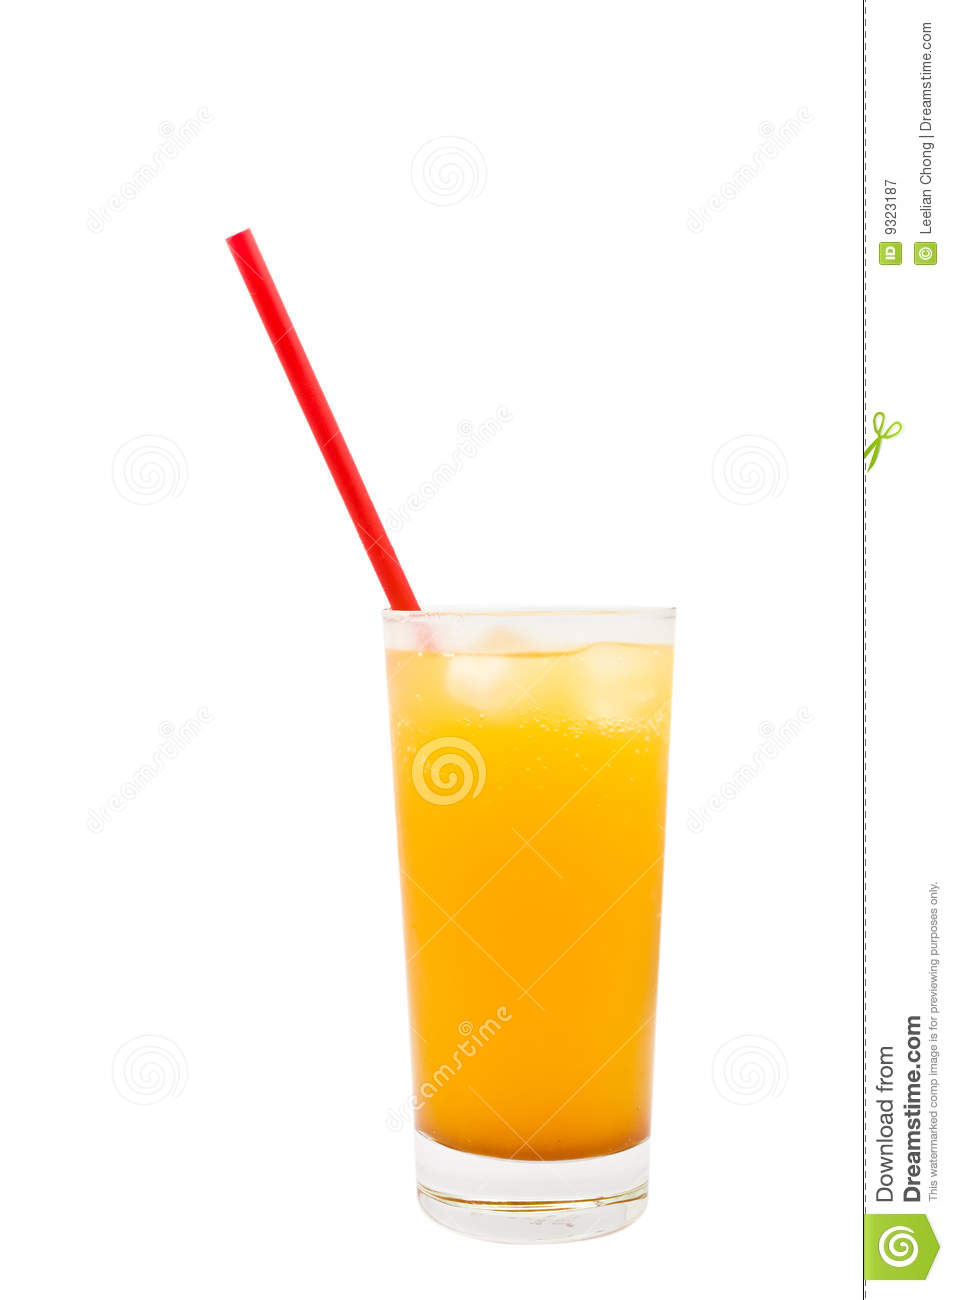 Cold Drink in aTall Glass with a Red Straw